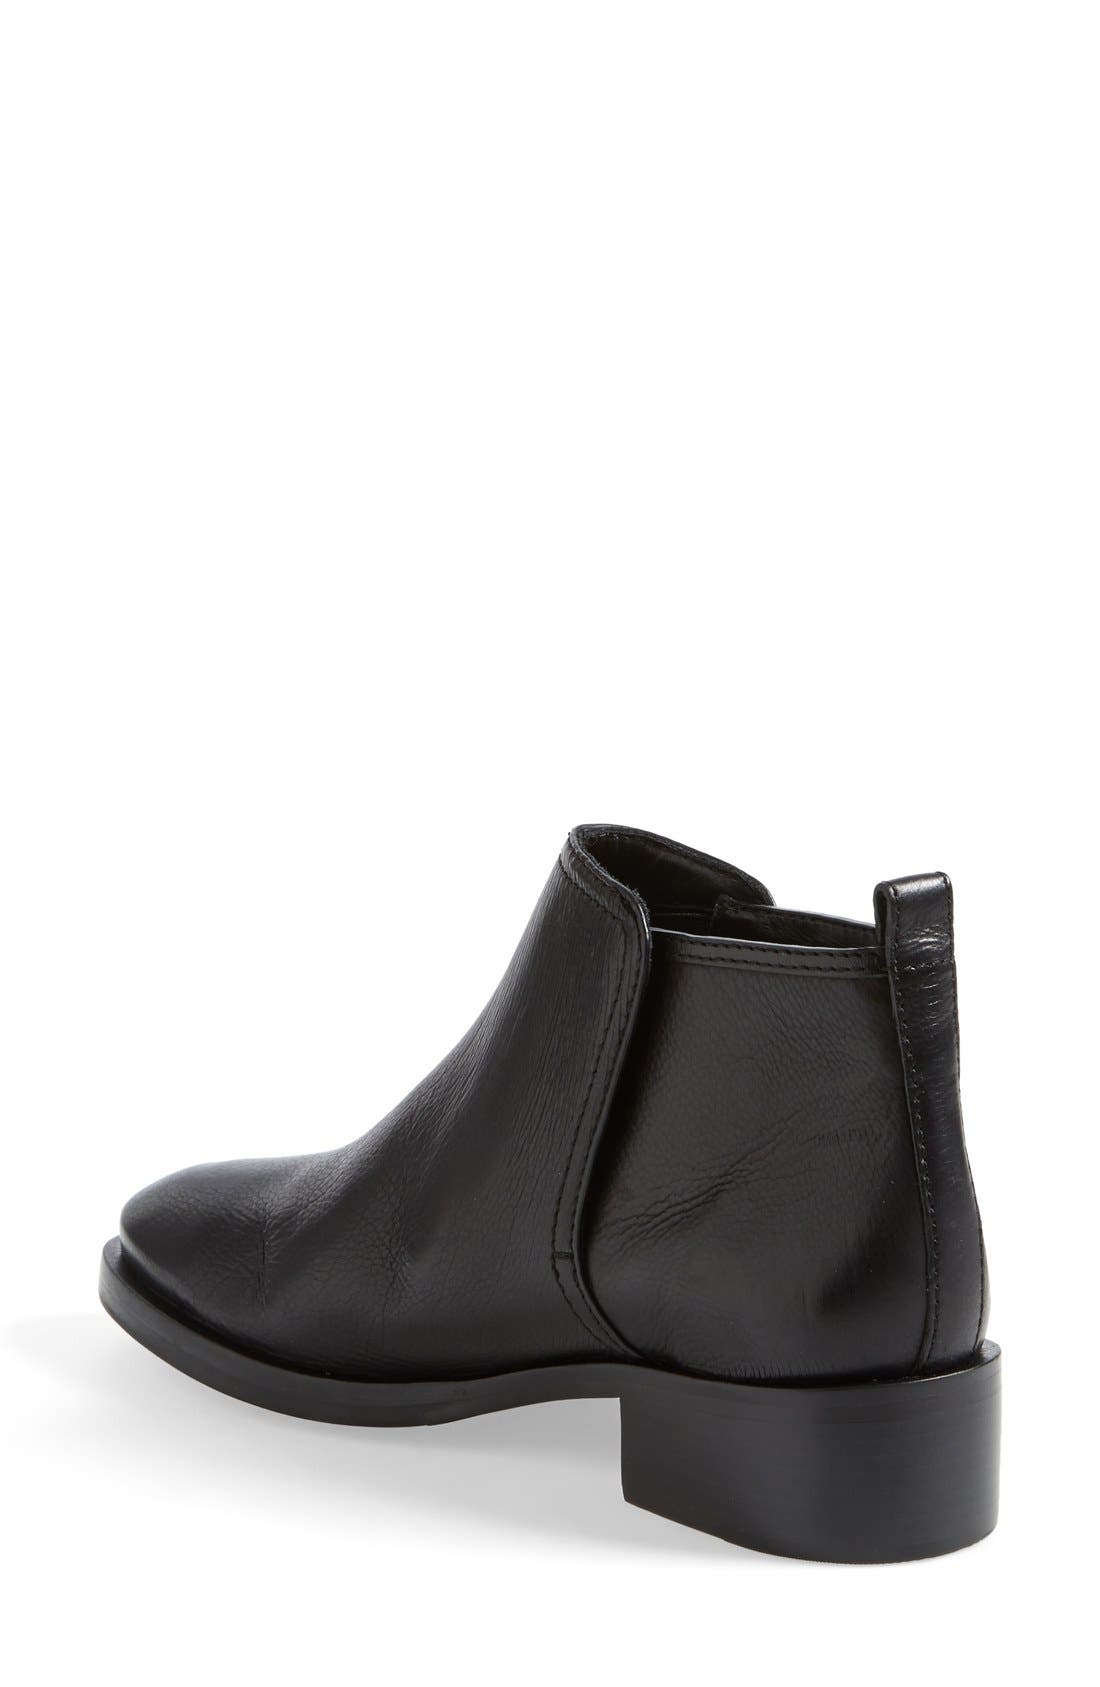 Alternate Image 2  - Tory Burch 'Lexi' Bootie (Women)